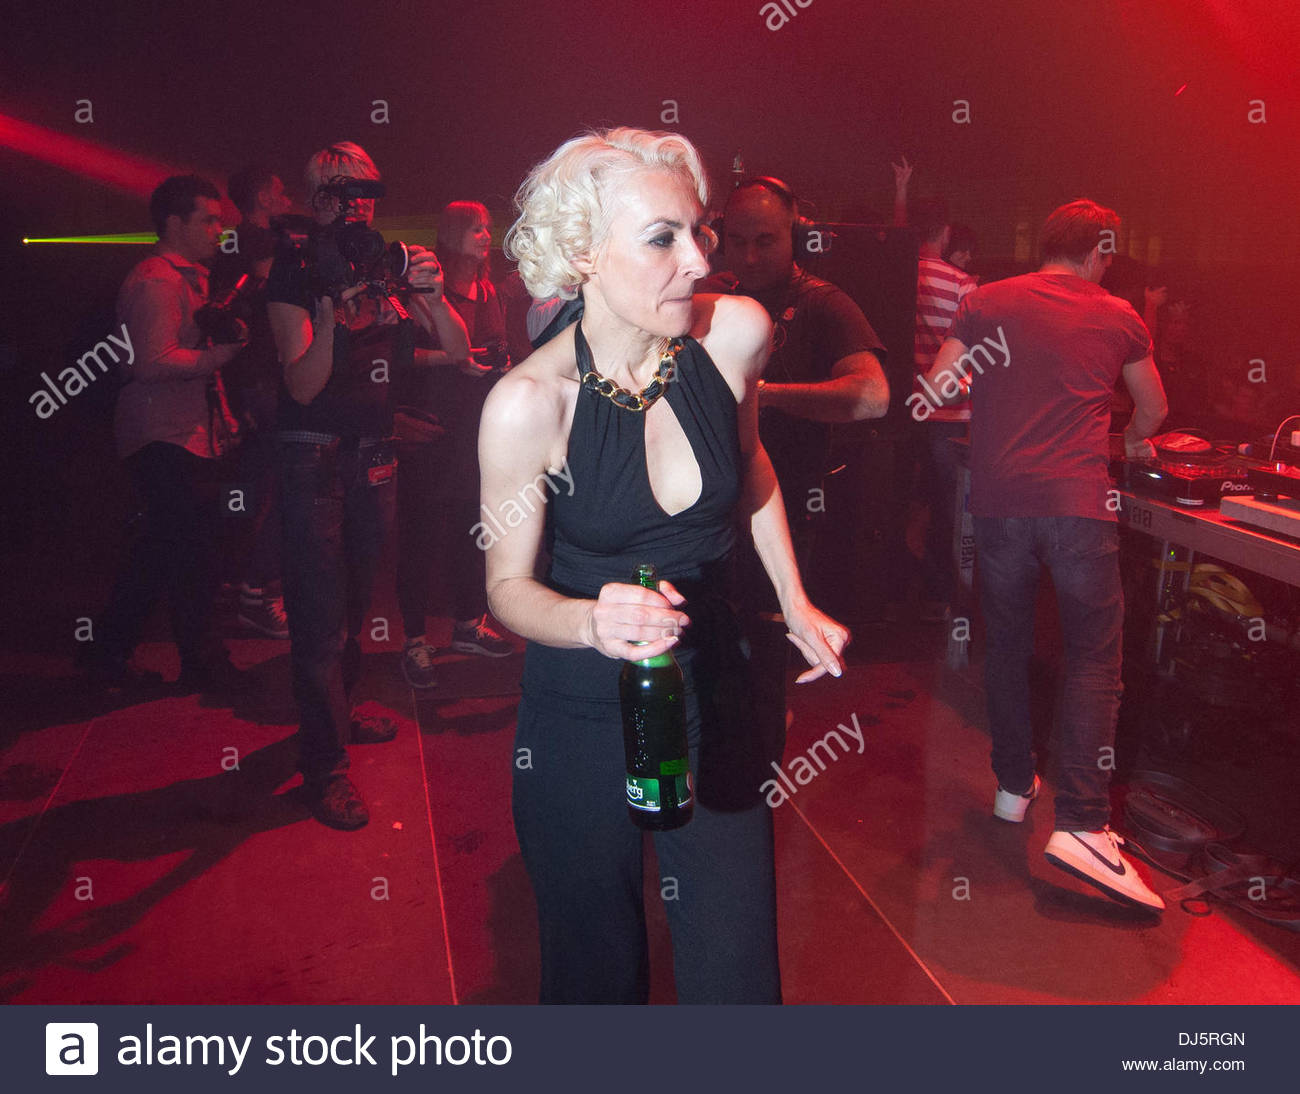 dj marusha at the turntables a und p berlin summer rave at airport stock photo royalty free. Black Bedroom Furniture Sets. Home Design Ideas